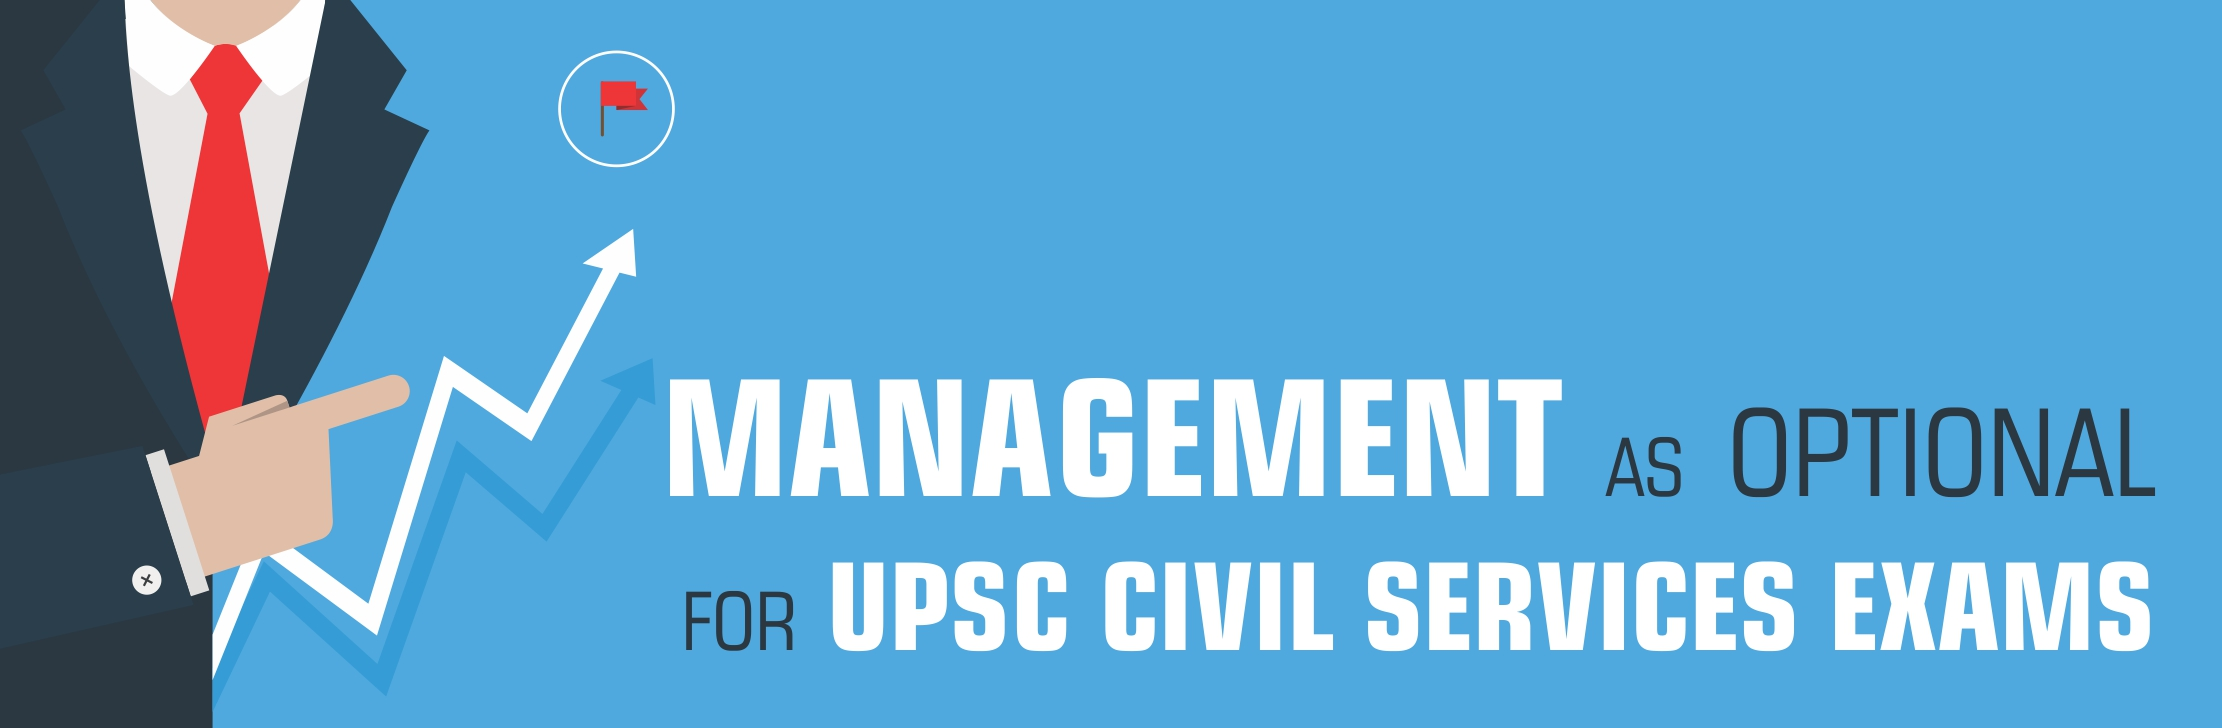 Management as optional for UPSC civil services exams